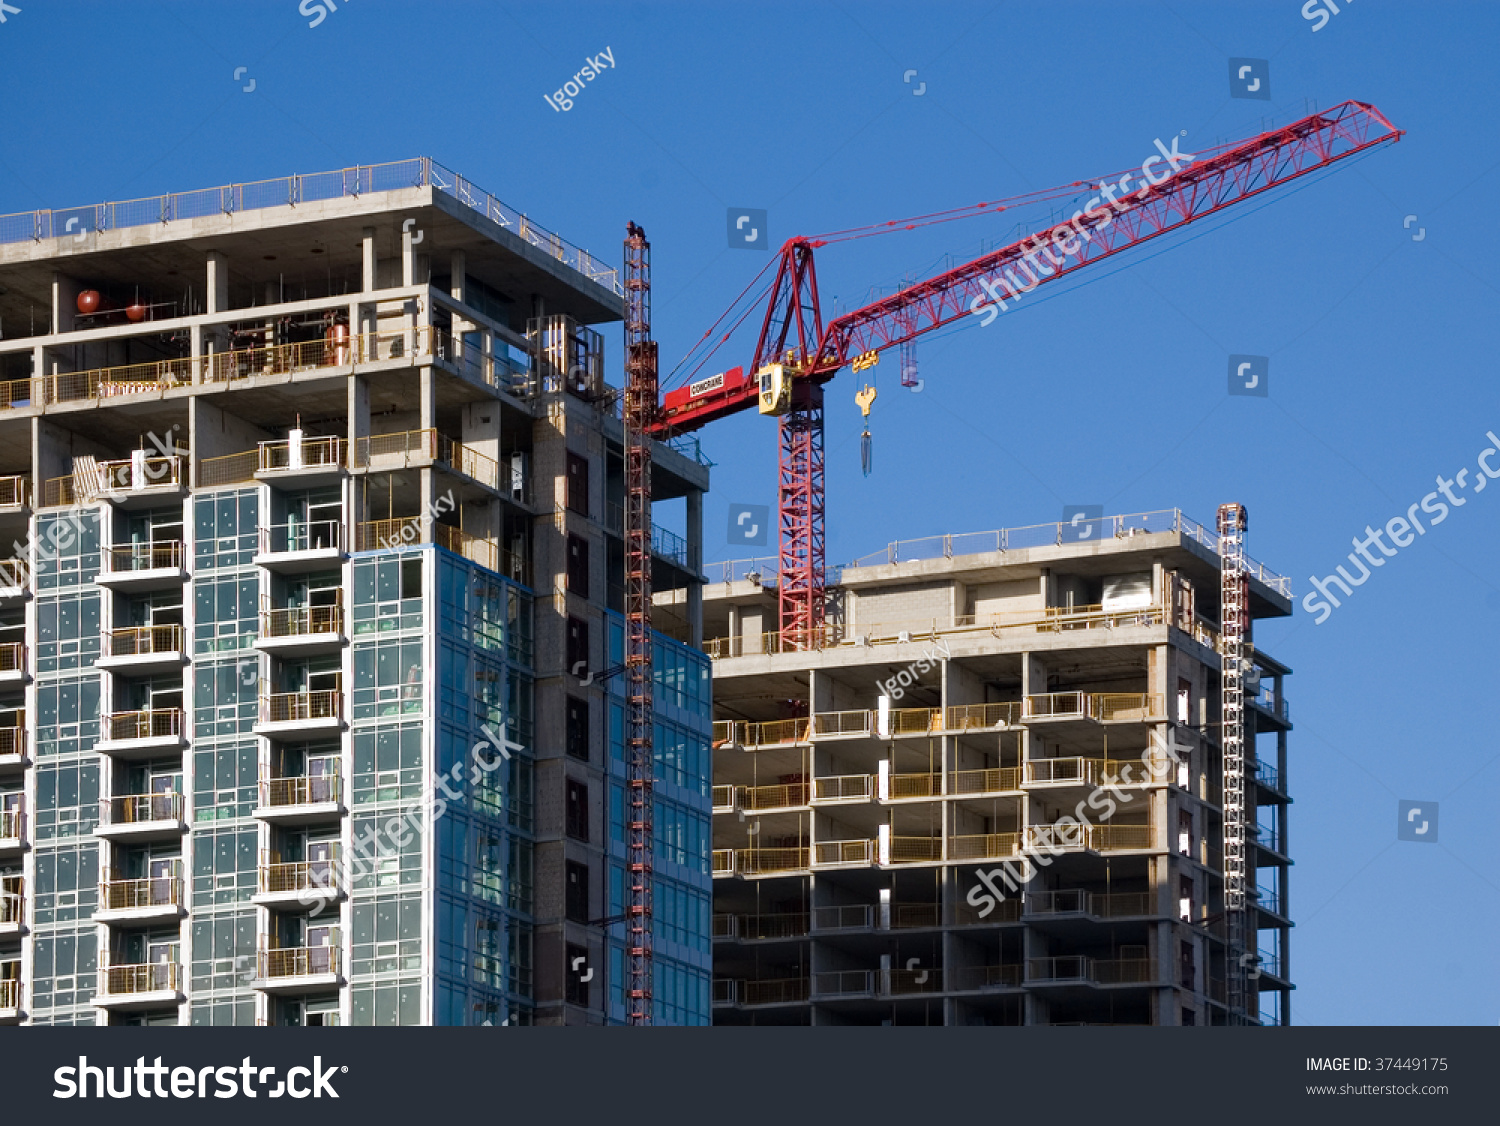 crane on top building construction site stock photo